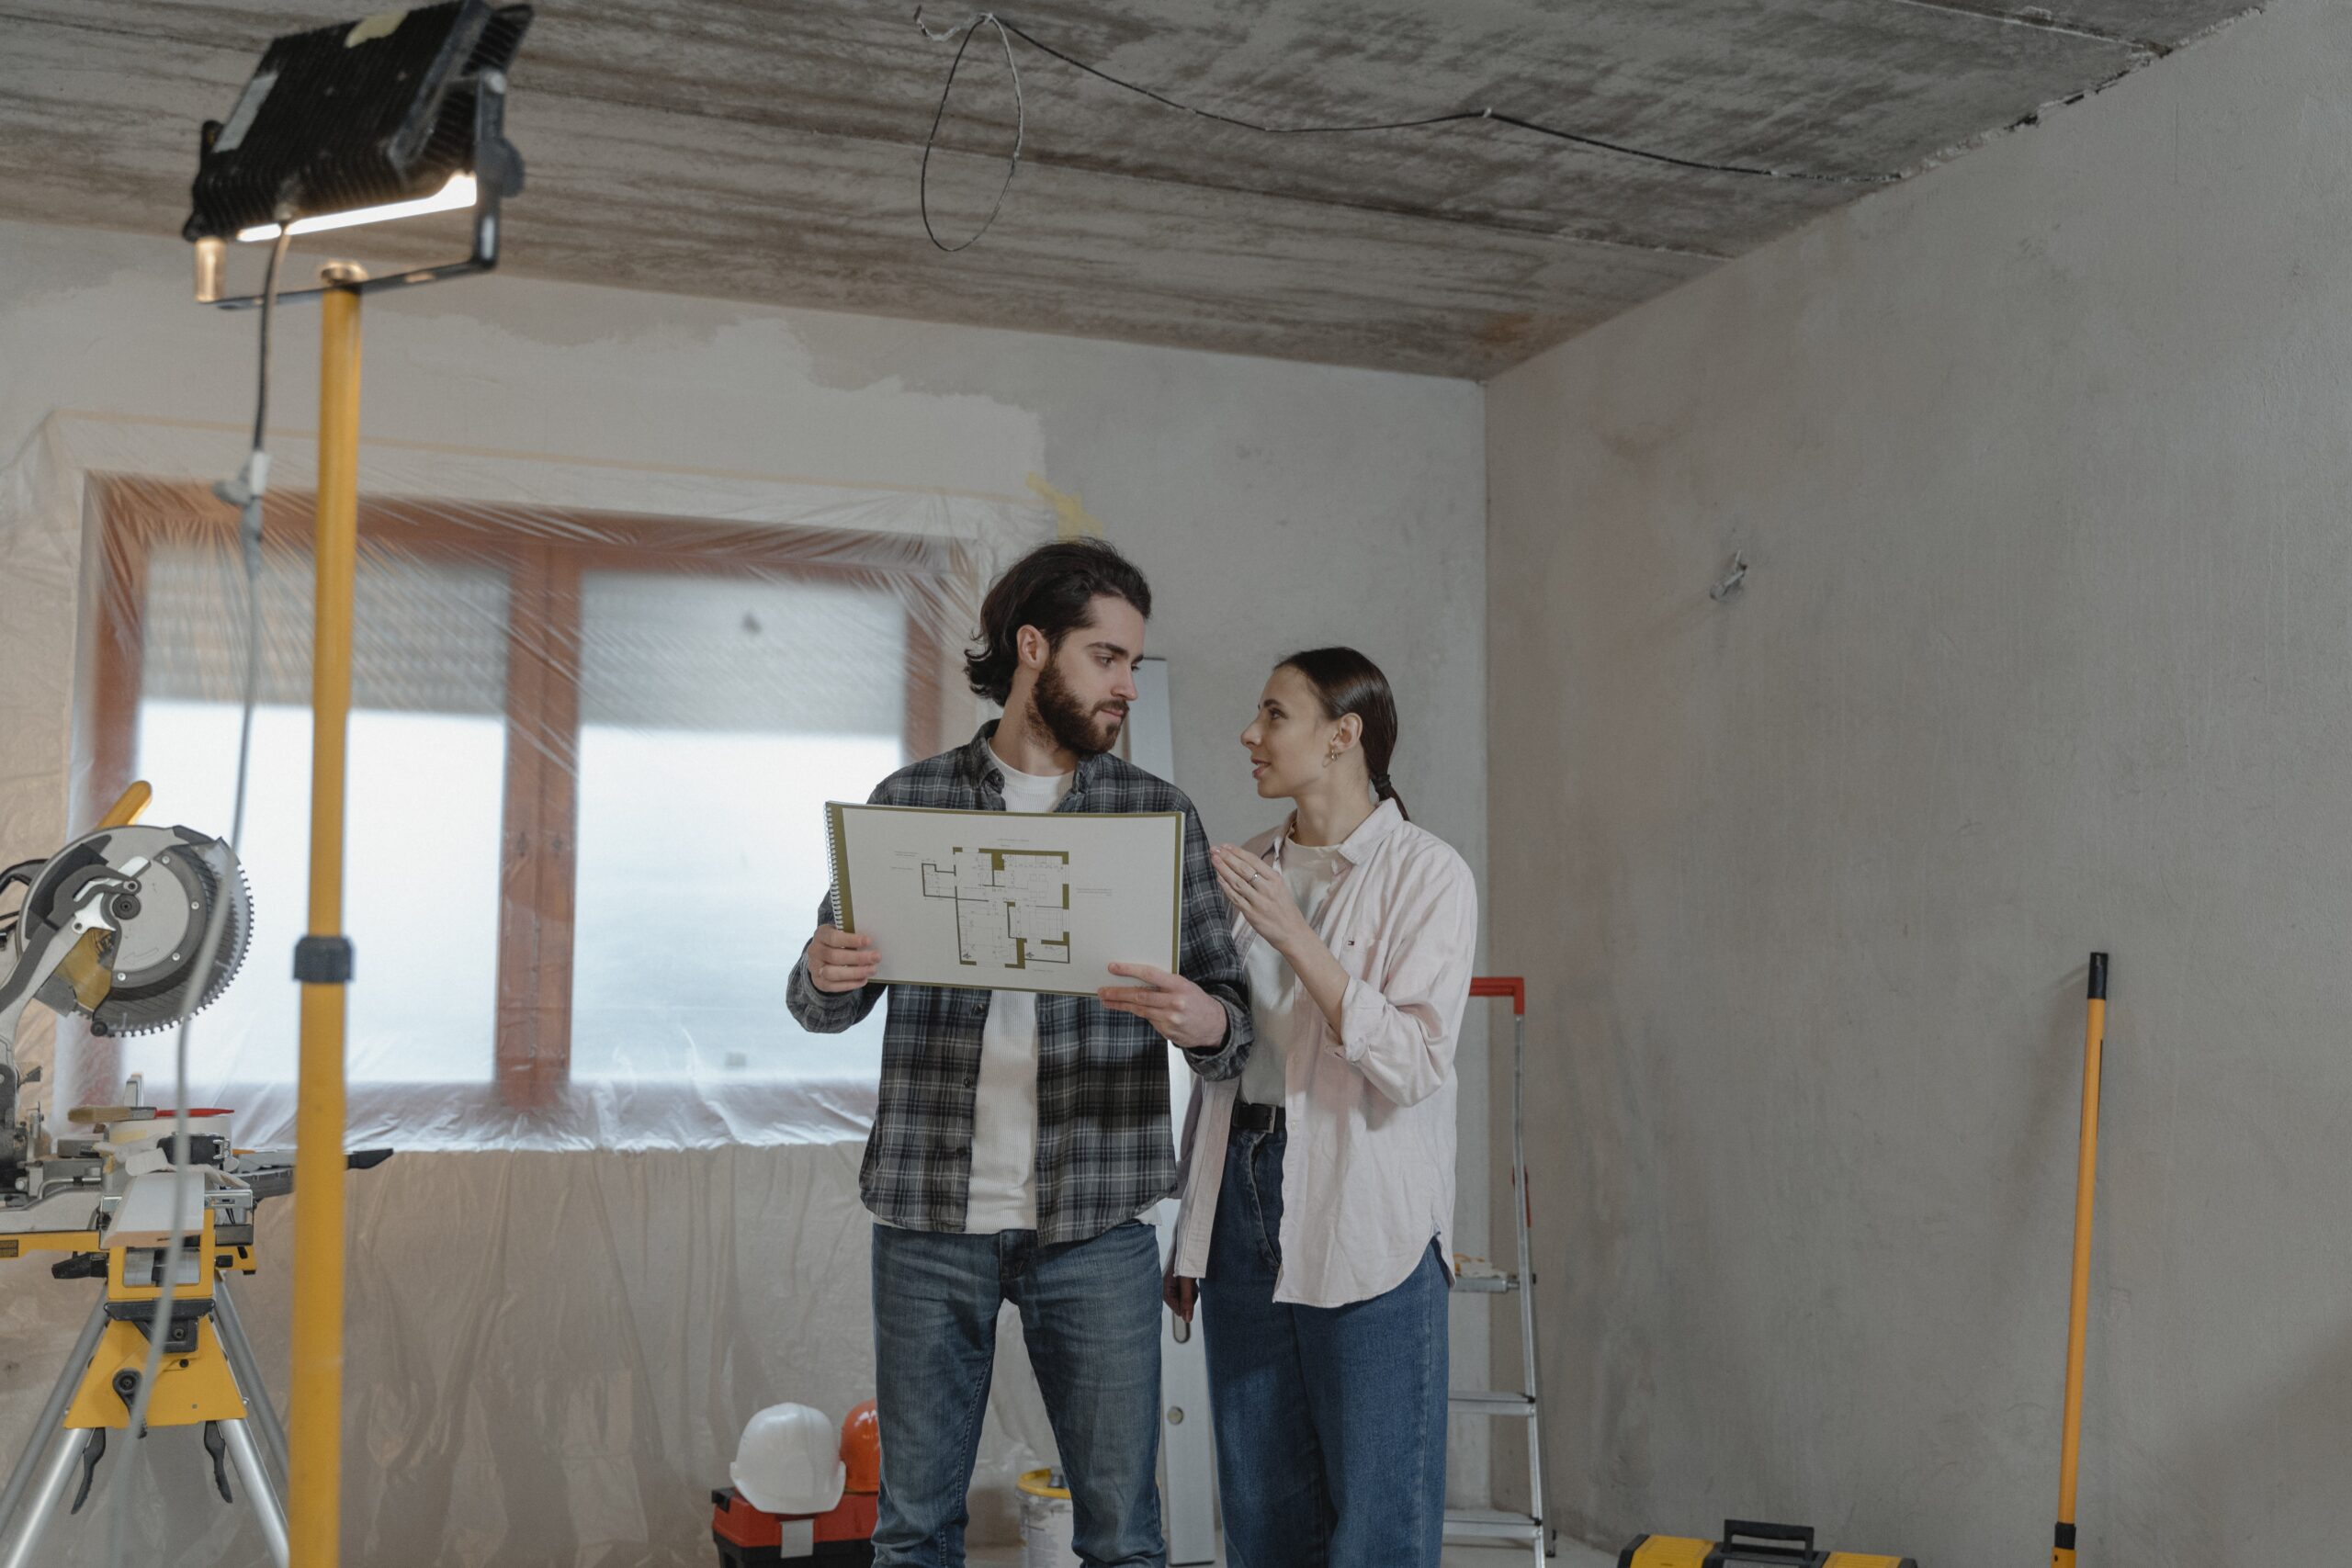 Two people looking at home's blueprints.